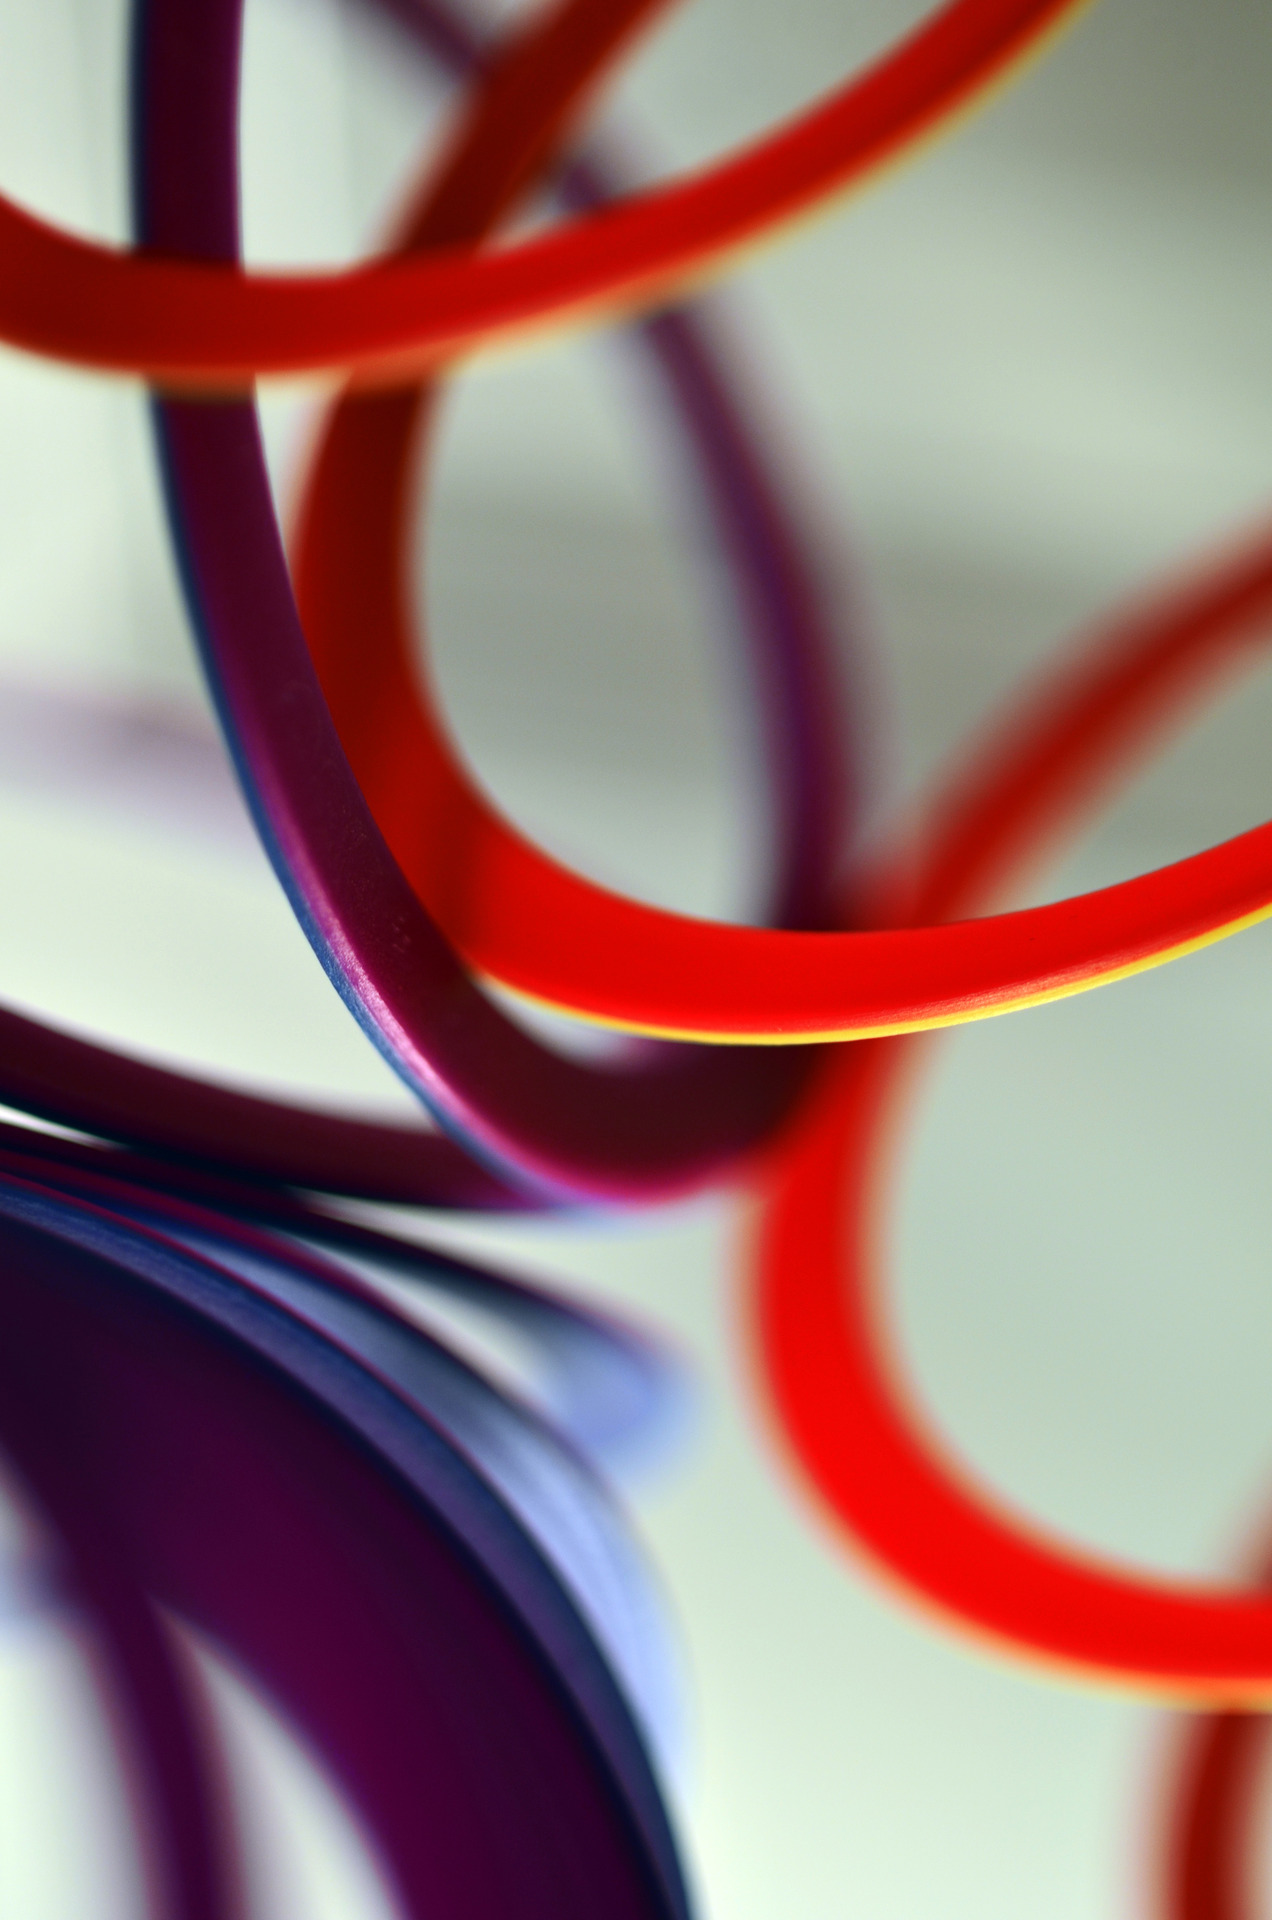 macro rings colorful red violet background